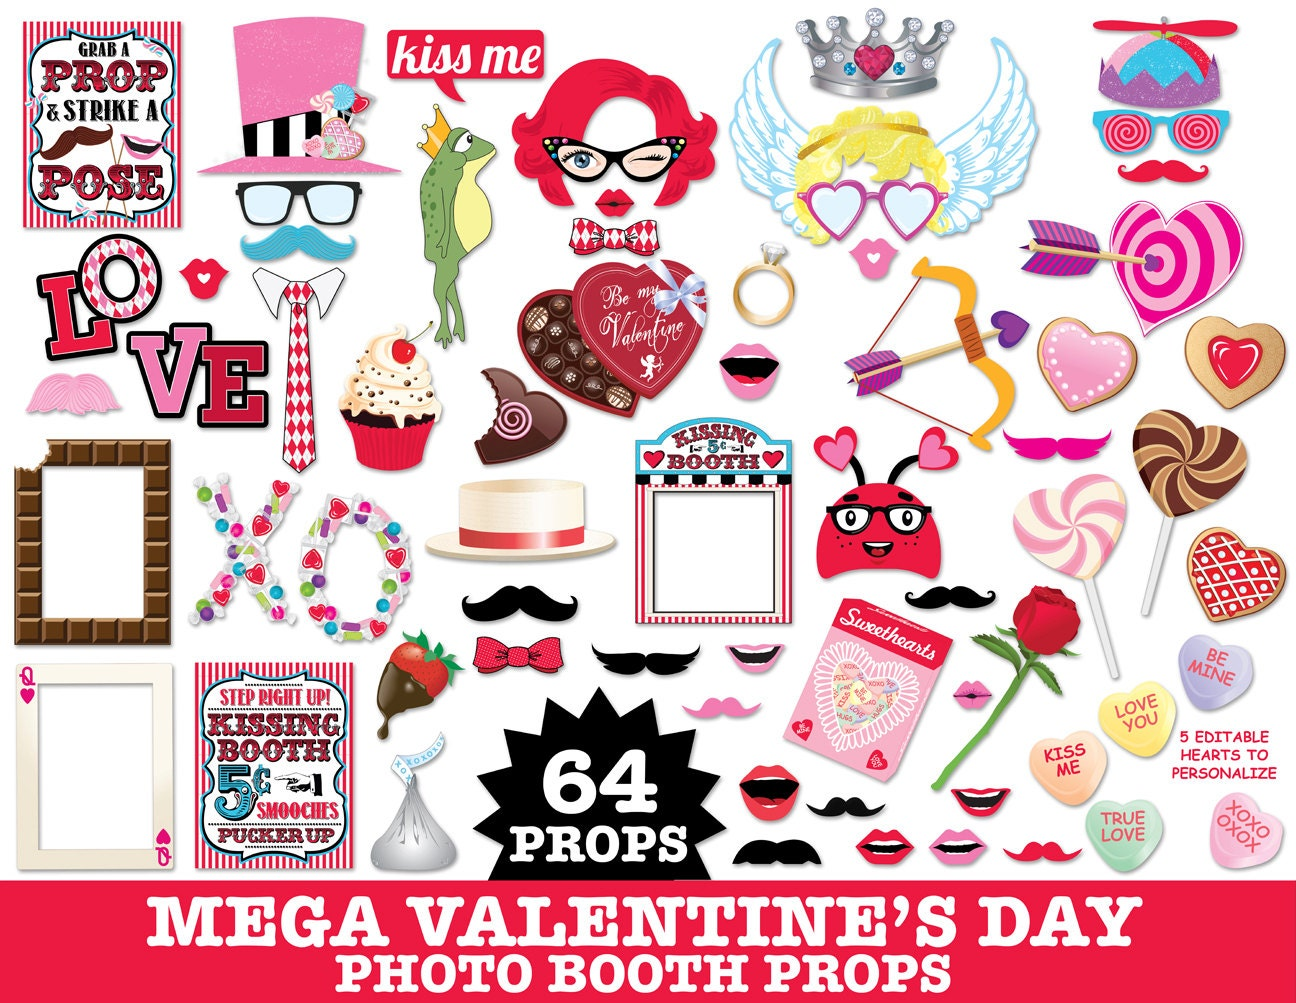 Fresh Valentines Day Photo Booth Props,Wedding Props,Cupid,Kissing Booth  SL95